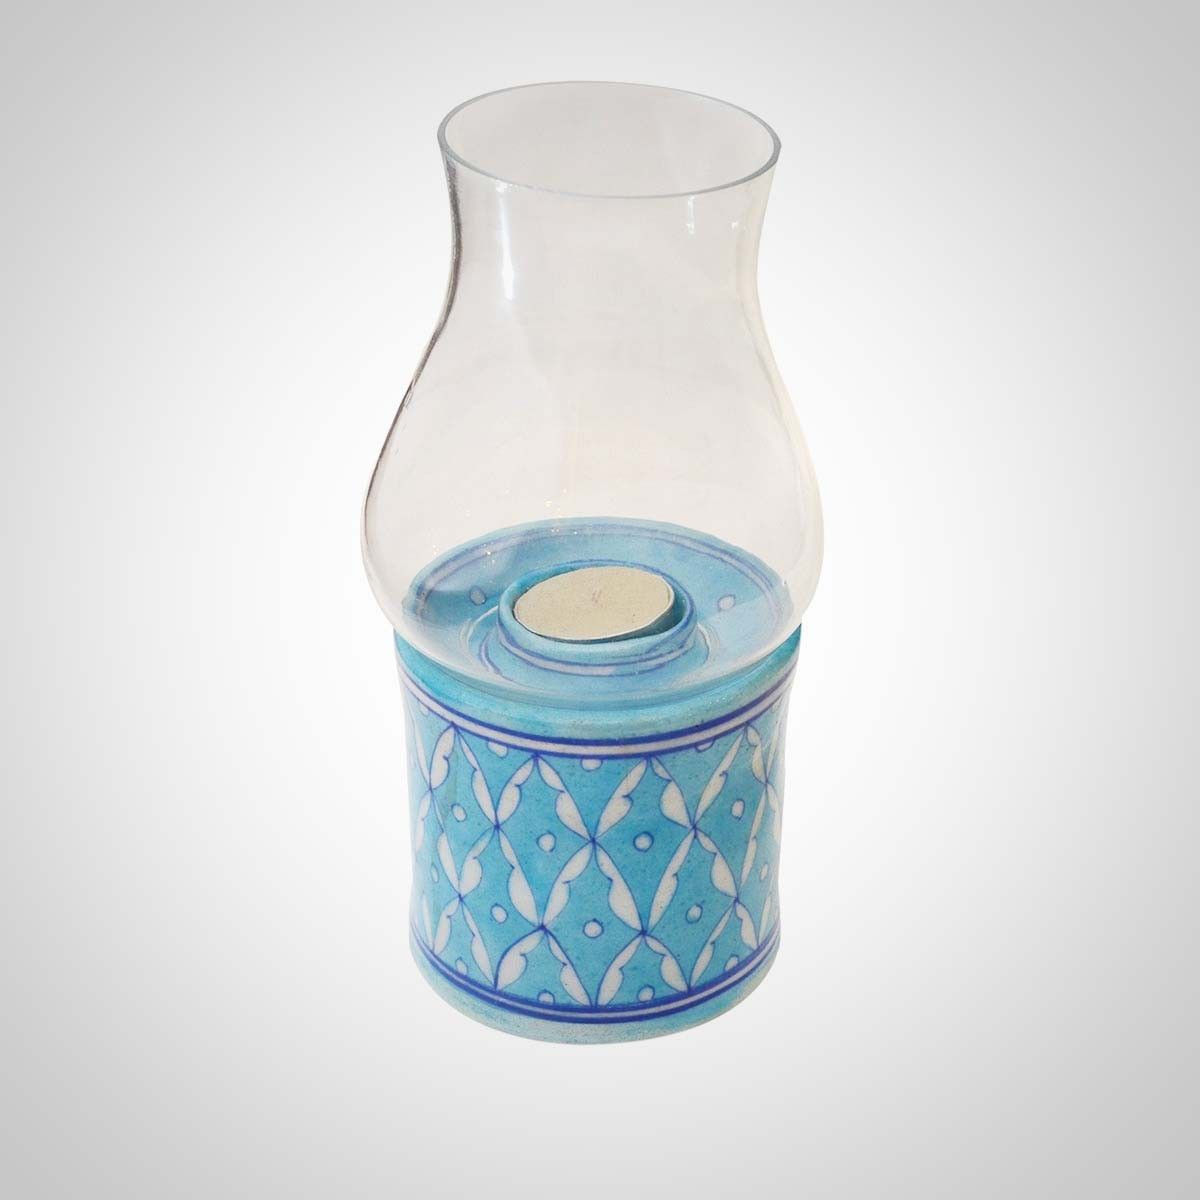 Sky Blue Ceramic & Glass Tea-Light Holder Chimney - 8.5 Inches Height